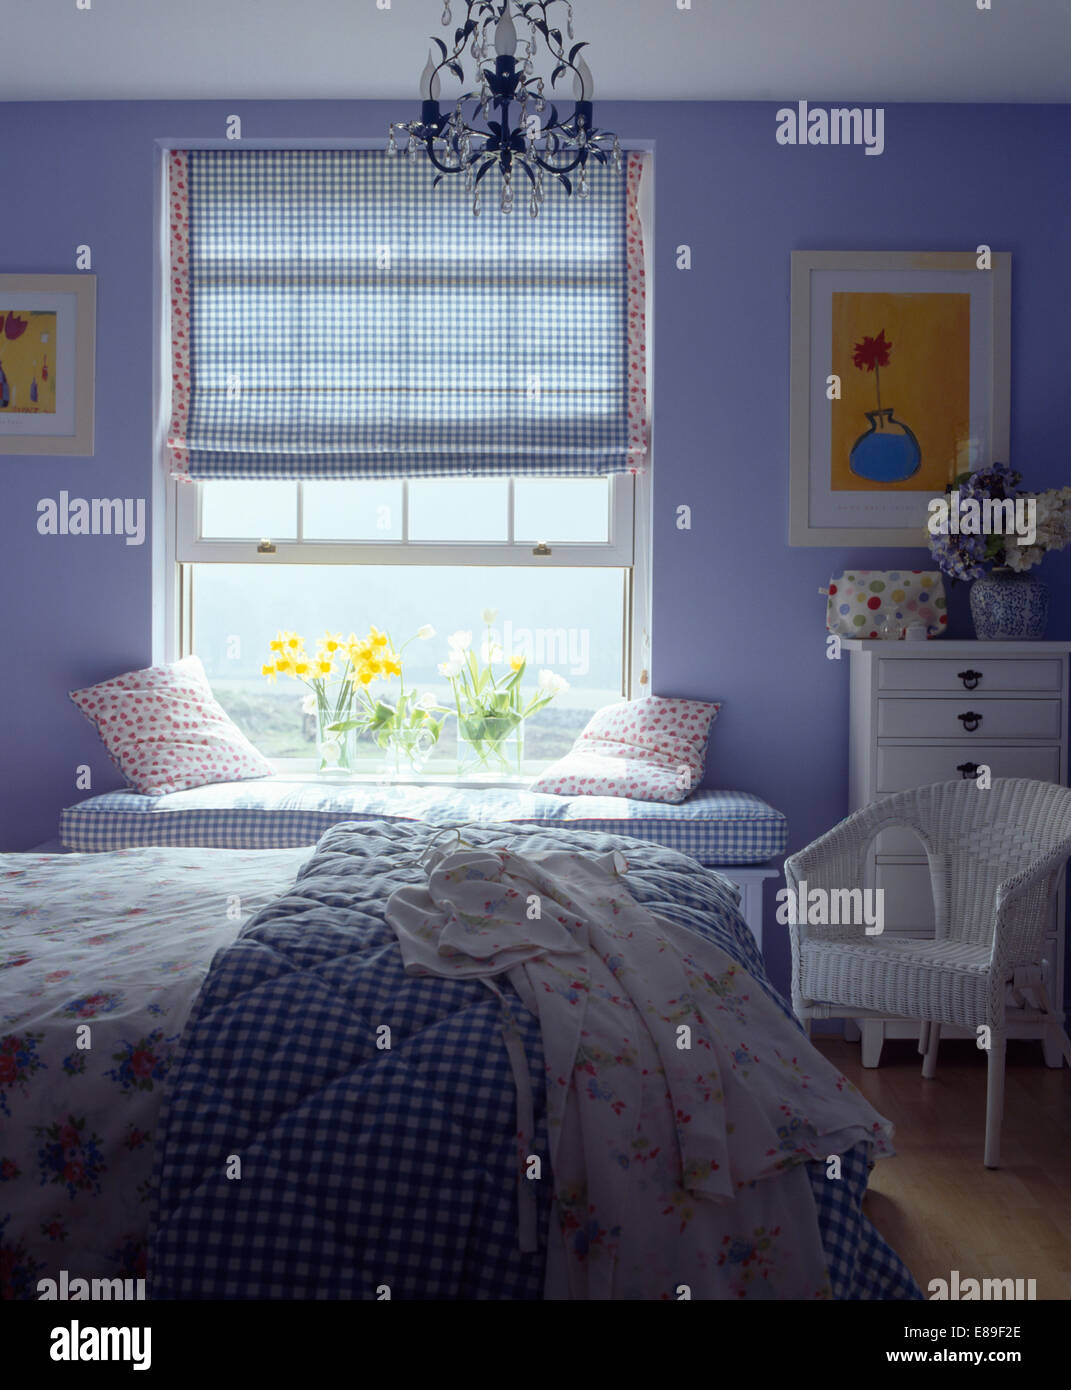 Groovy Blue Checked Blind On Window In Mauve Bedroom With White Spiritservingveterans Wood Chair Design Ideas Spiritservingveteransorg